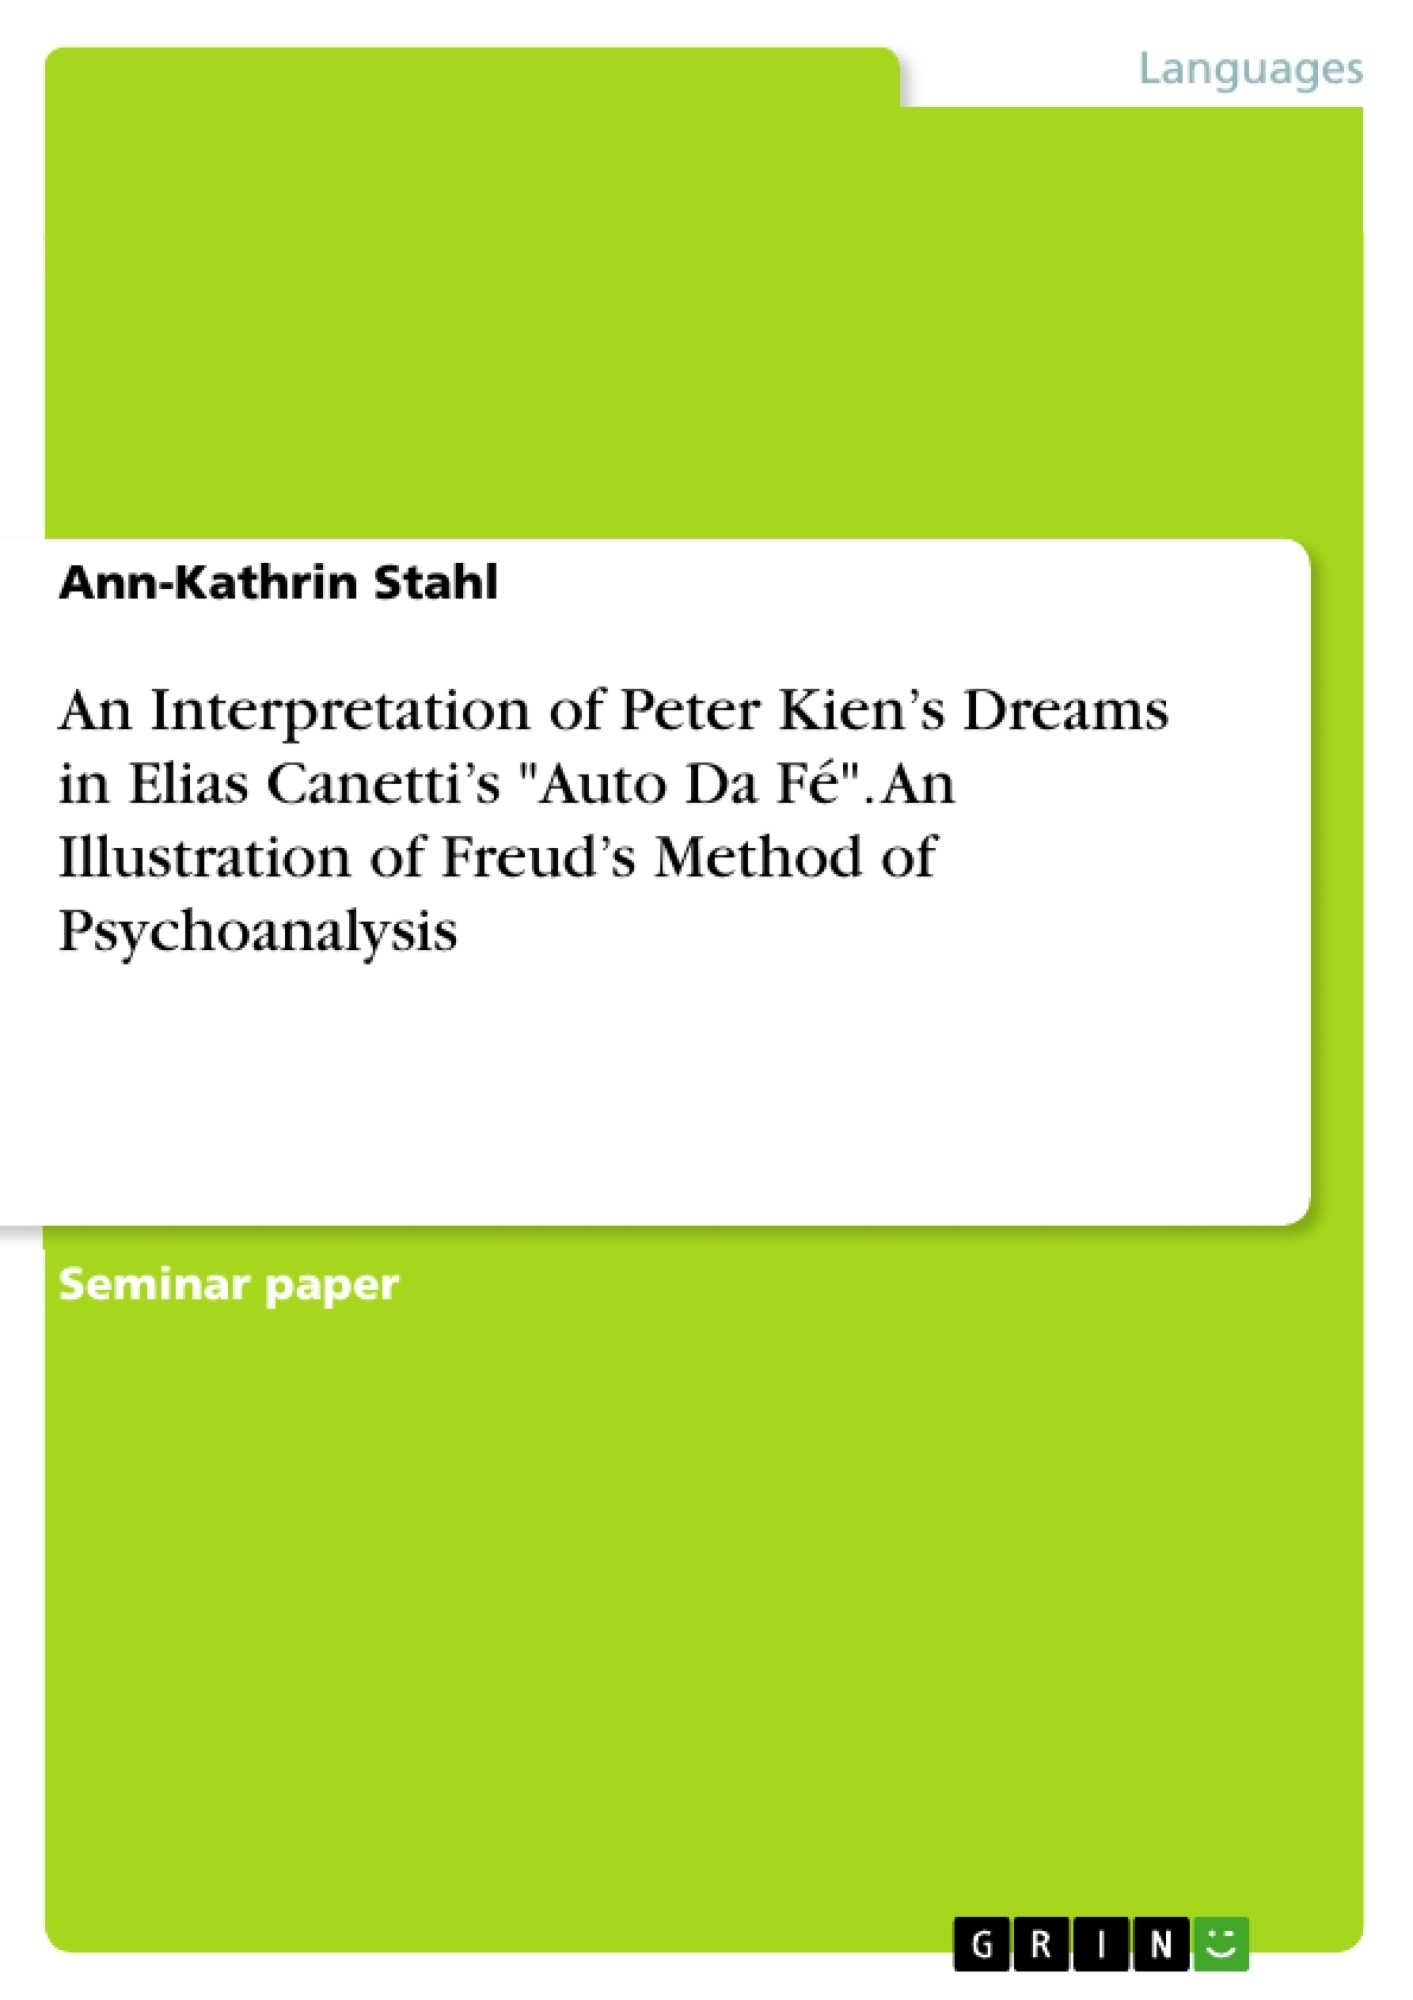 psychology term paper dreams The right way to compose an intriguing psychology research paper assignment on the subject of dreams a technique that is sure to get you the best results.